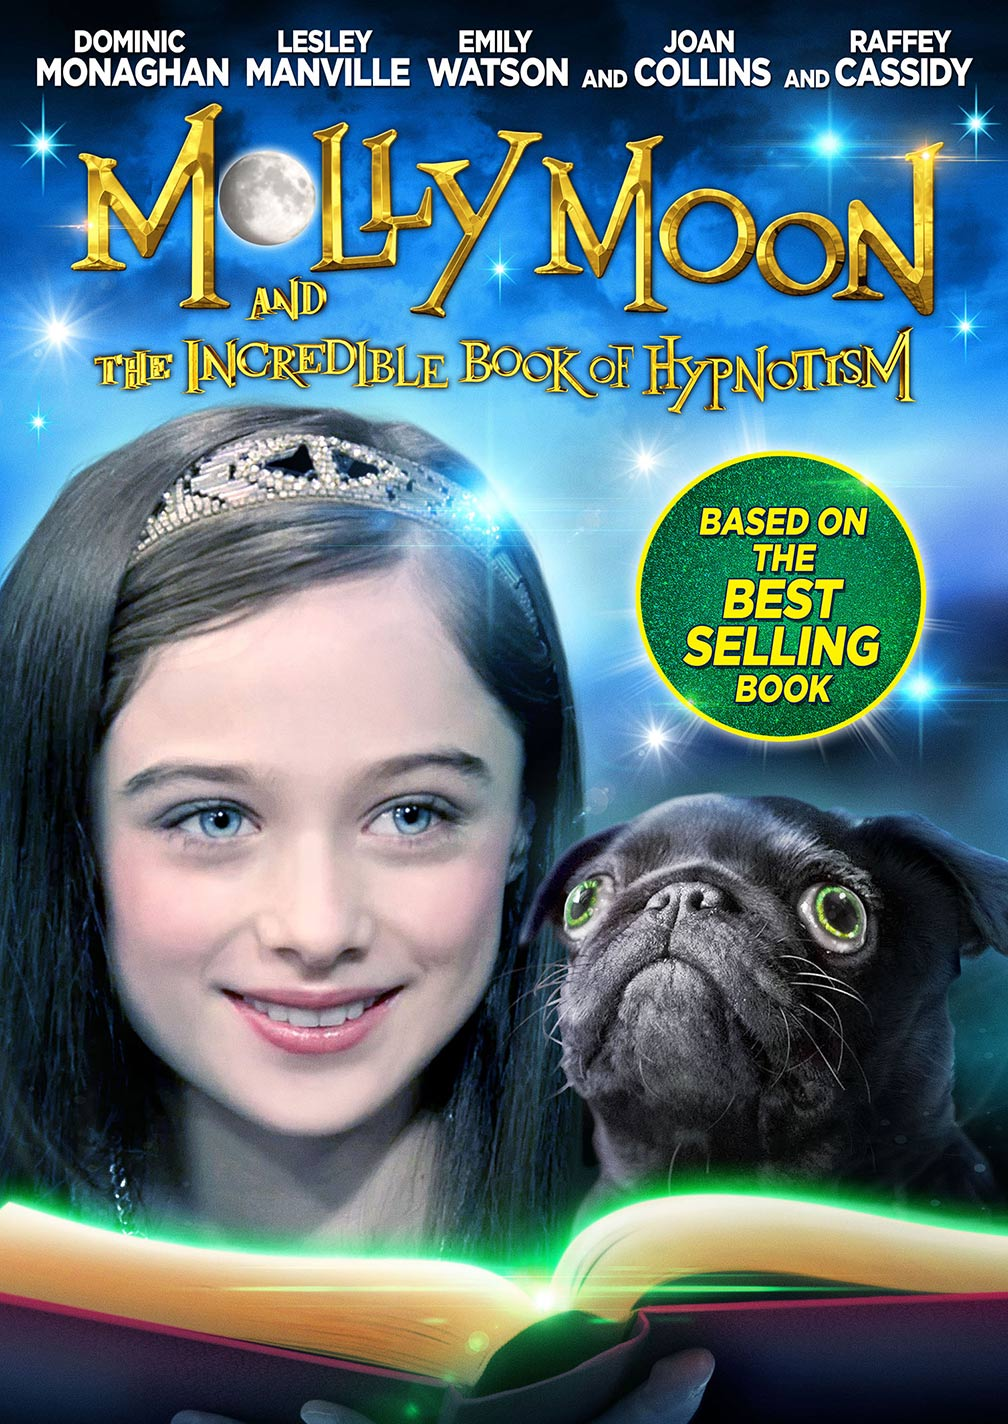 Molly Moon and the Incredible Book of Hypnotism Poster #1